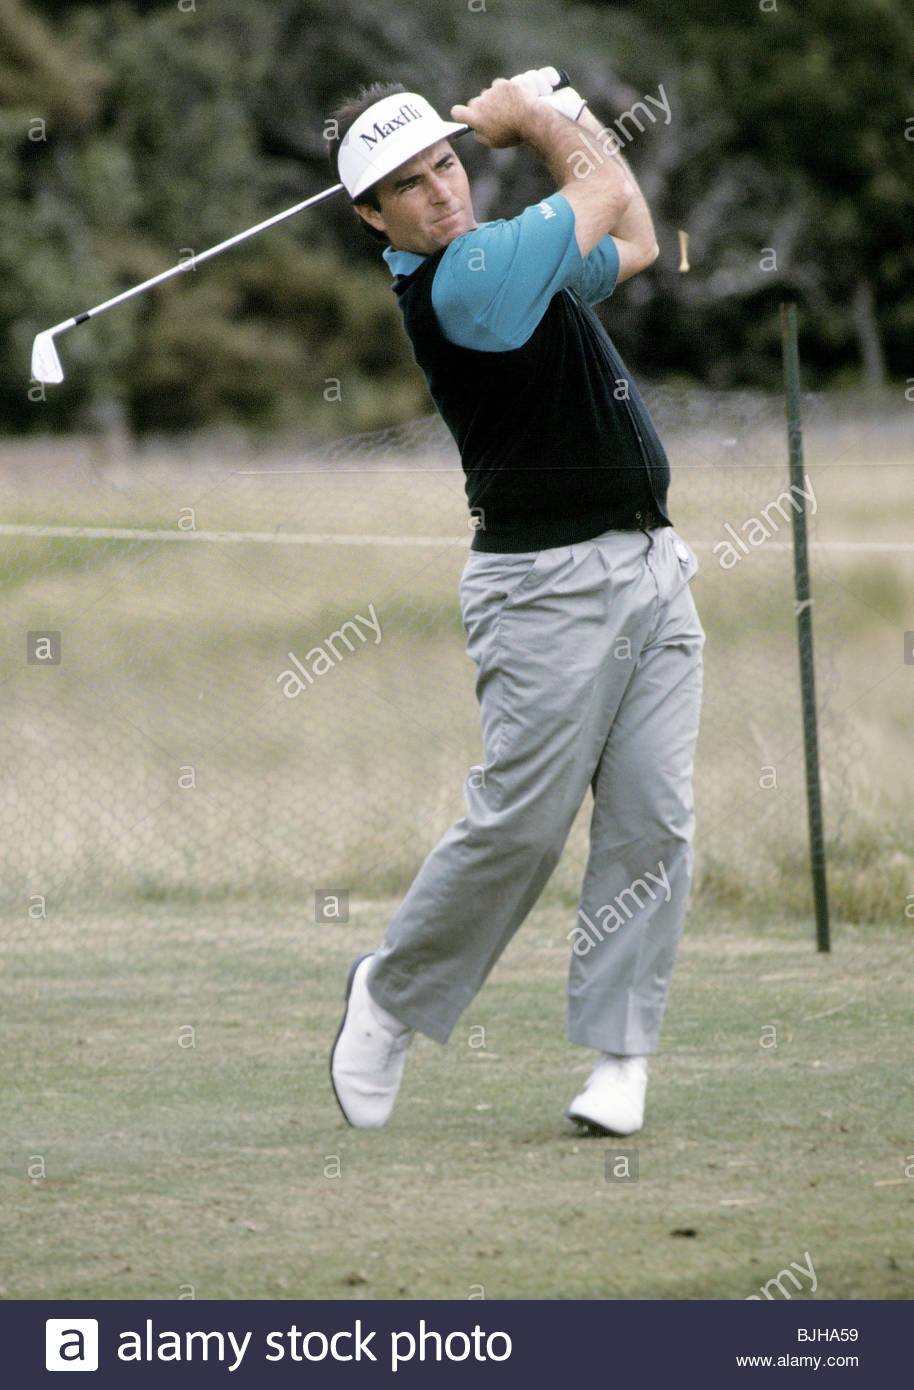 1992/1993 Golfer Craig Parry in action - Stock Image